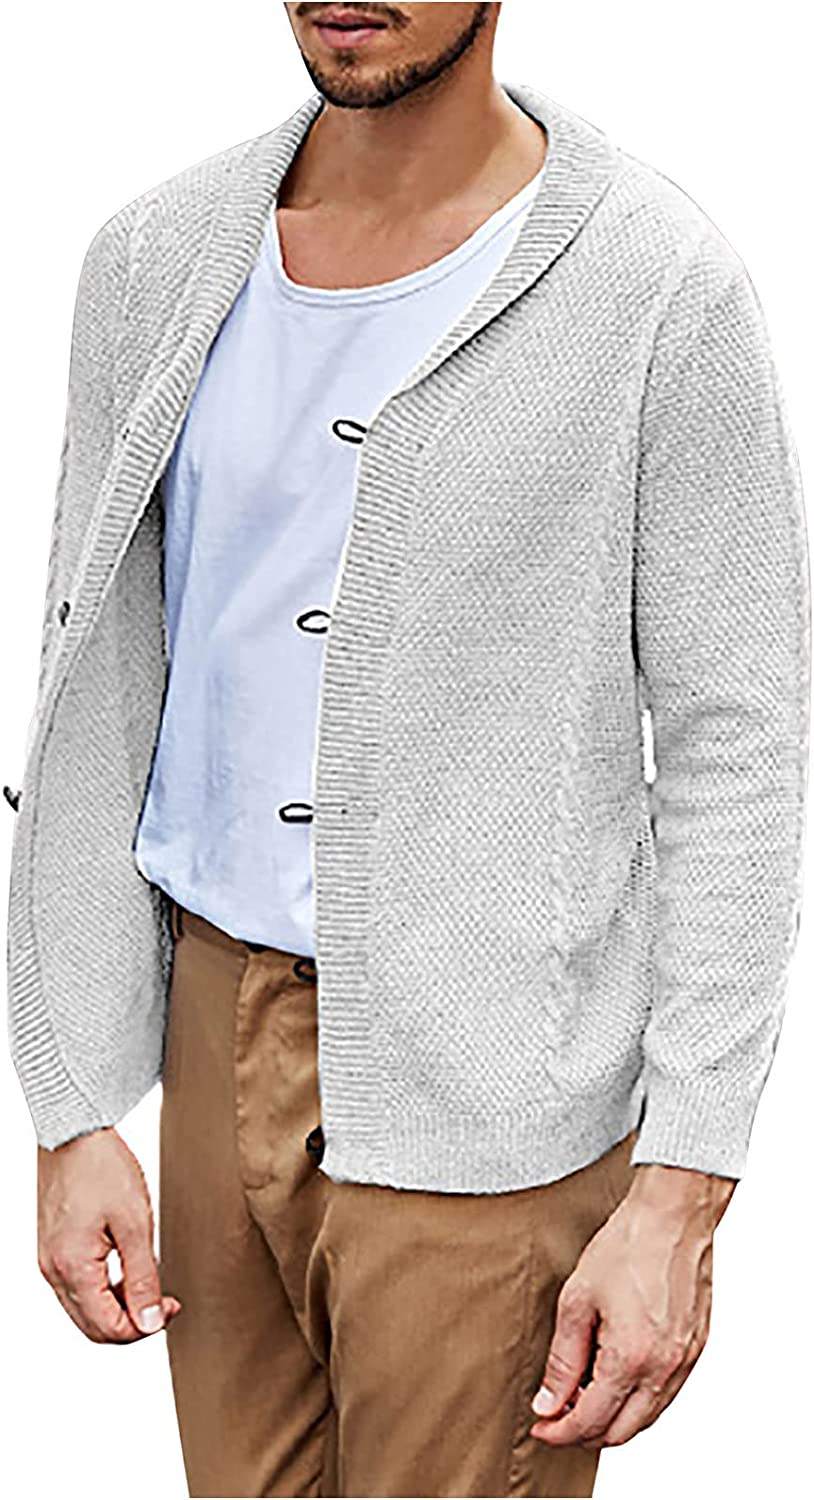 Men's Cardigan Coat Fashion Solid Lapel Long-Sleeved Leather Button Flat Knitted Sweater Henley Sweater Jacket